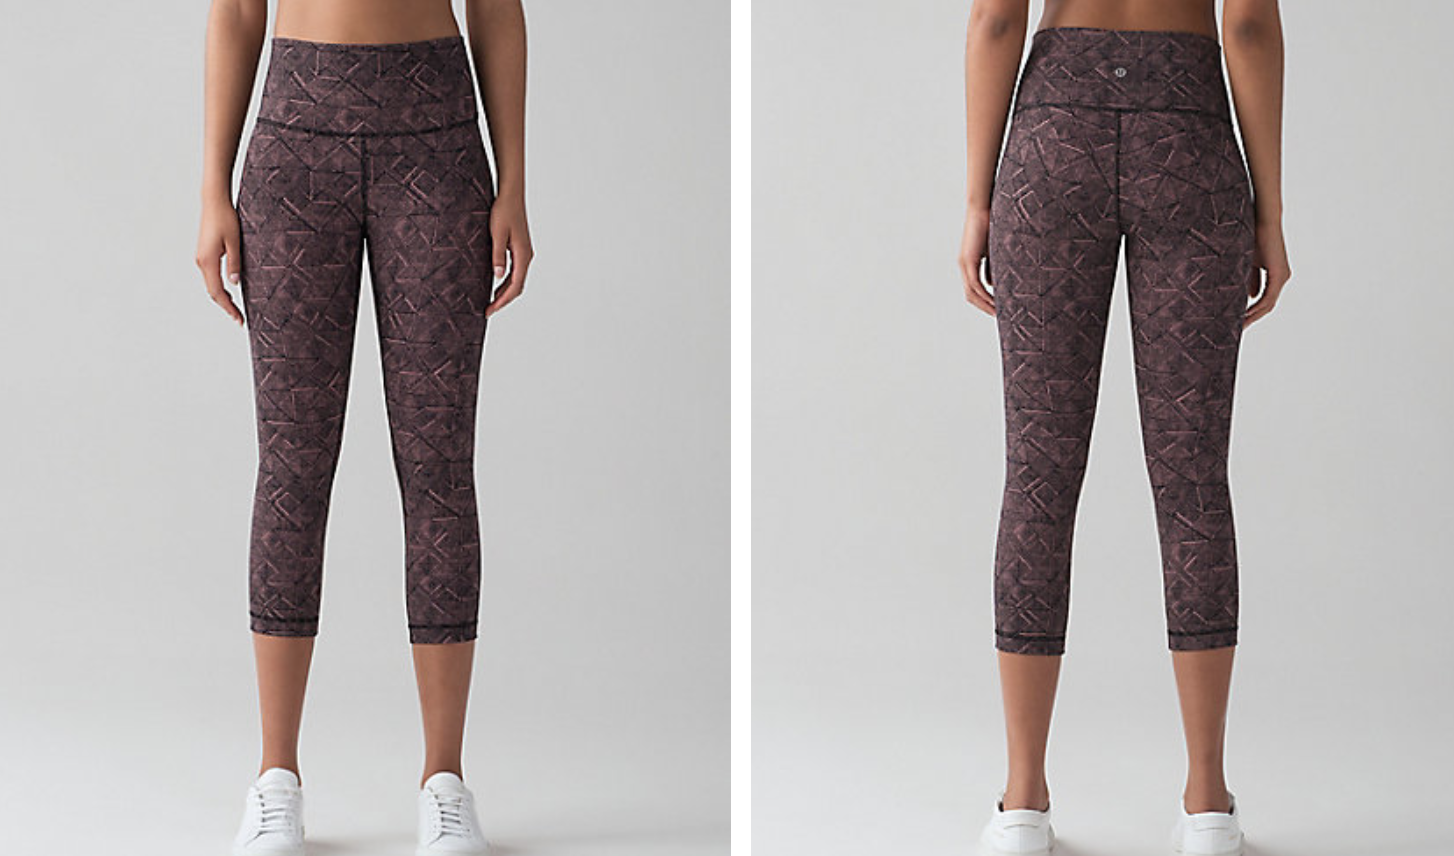 https://api.shopstyle.com/action/apiVisitRetailer?url=https%3A%2F%2Fshop.lululemon.com%2Fp%2Fwomen-crops%2FWunder-Under-Crop-Hi-Rise-Full-On-Lux%2F_%2Fprod2080039%3Frcnt%3D39%26N%3D1z13ziiZ7z5%26cnt%3D65%26color%3DLW6AI3S_028966&site=www.shopstyle.ca&pid=uid6784-25288972-7